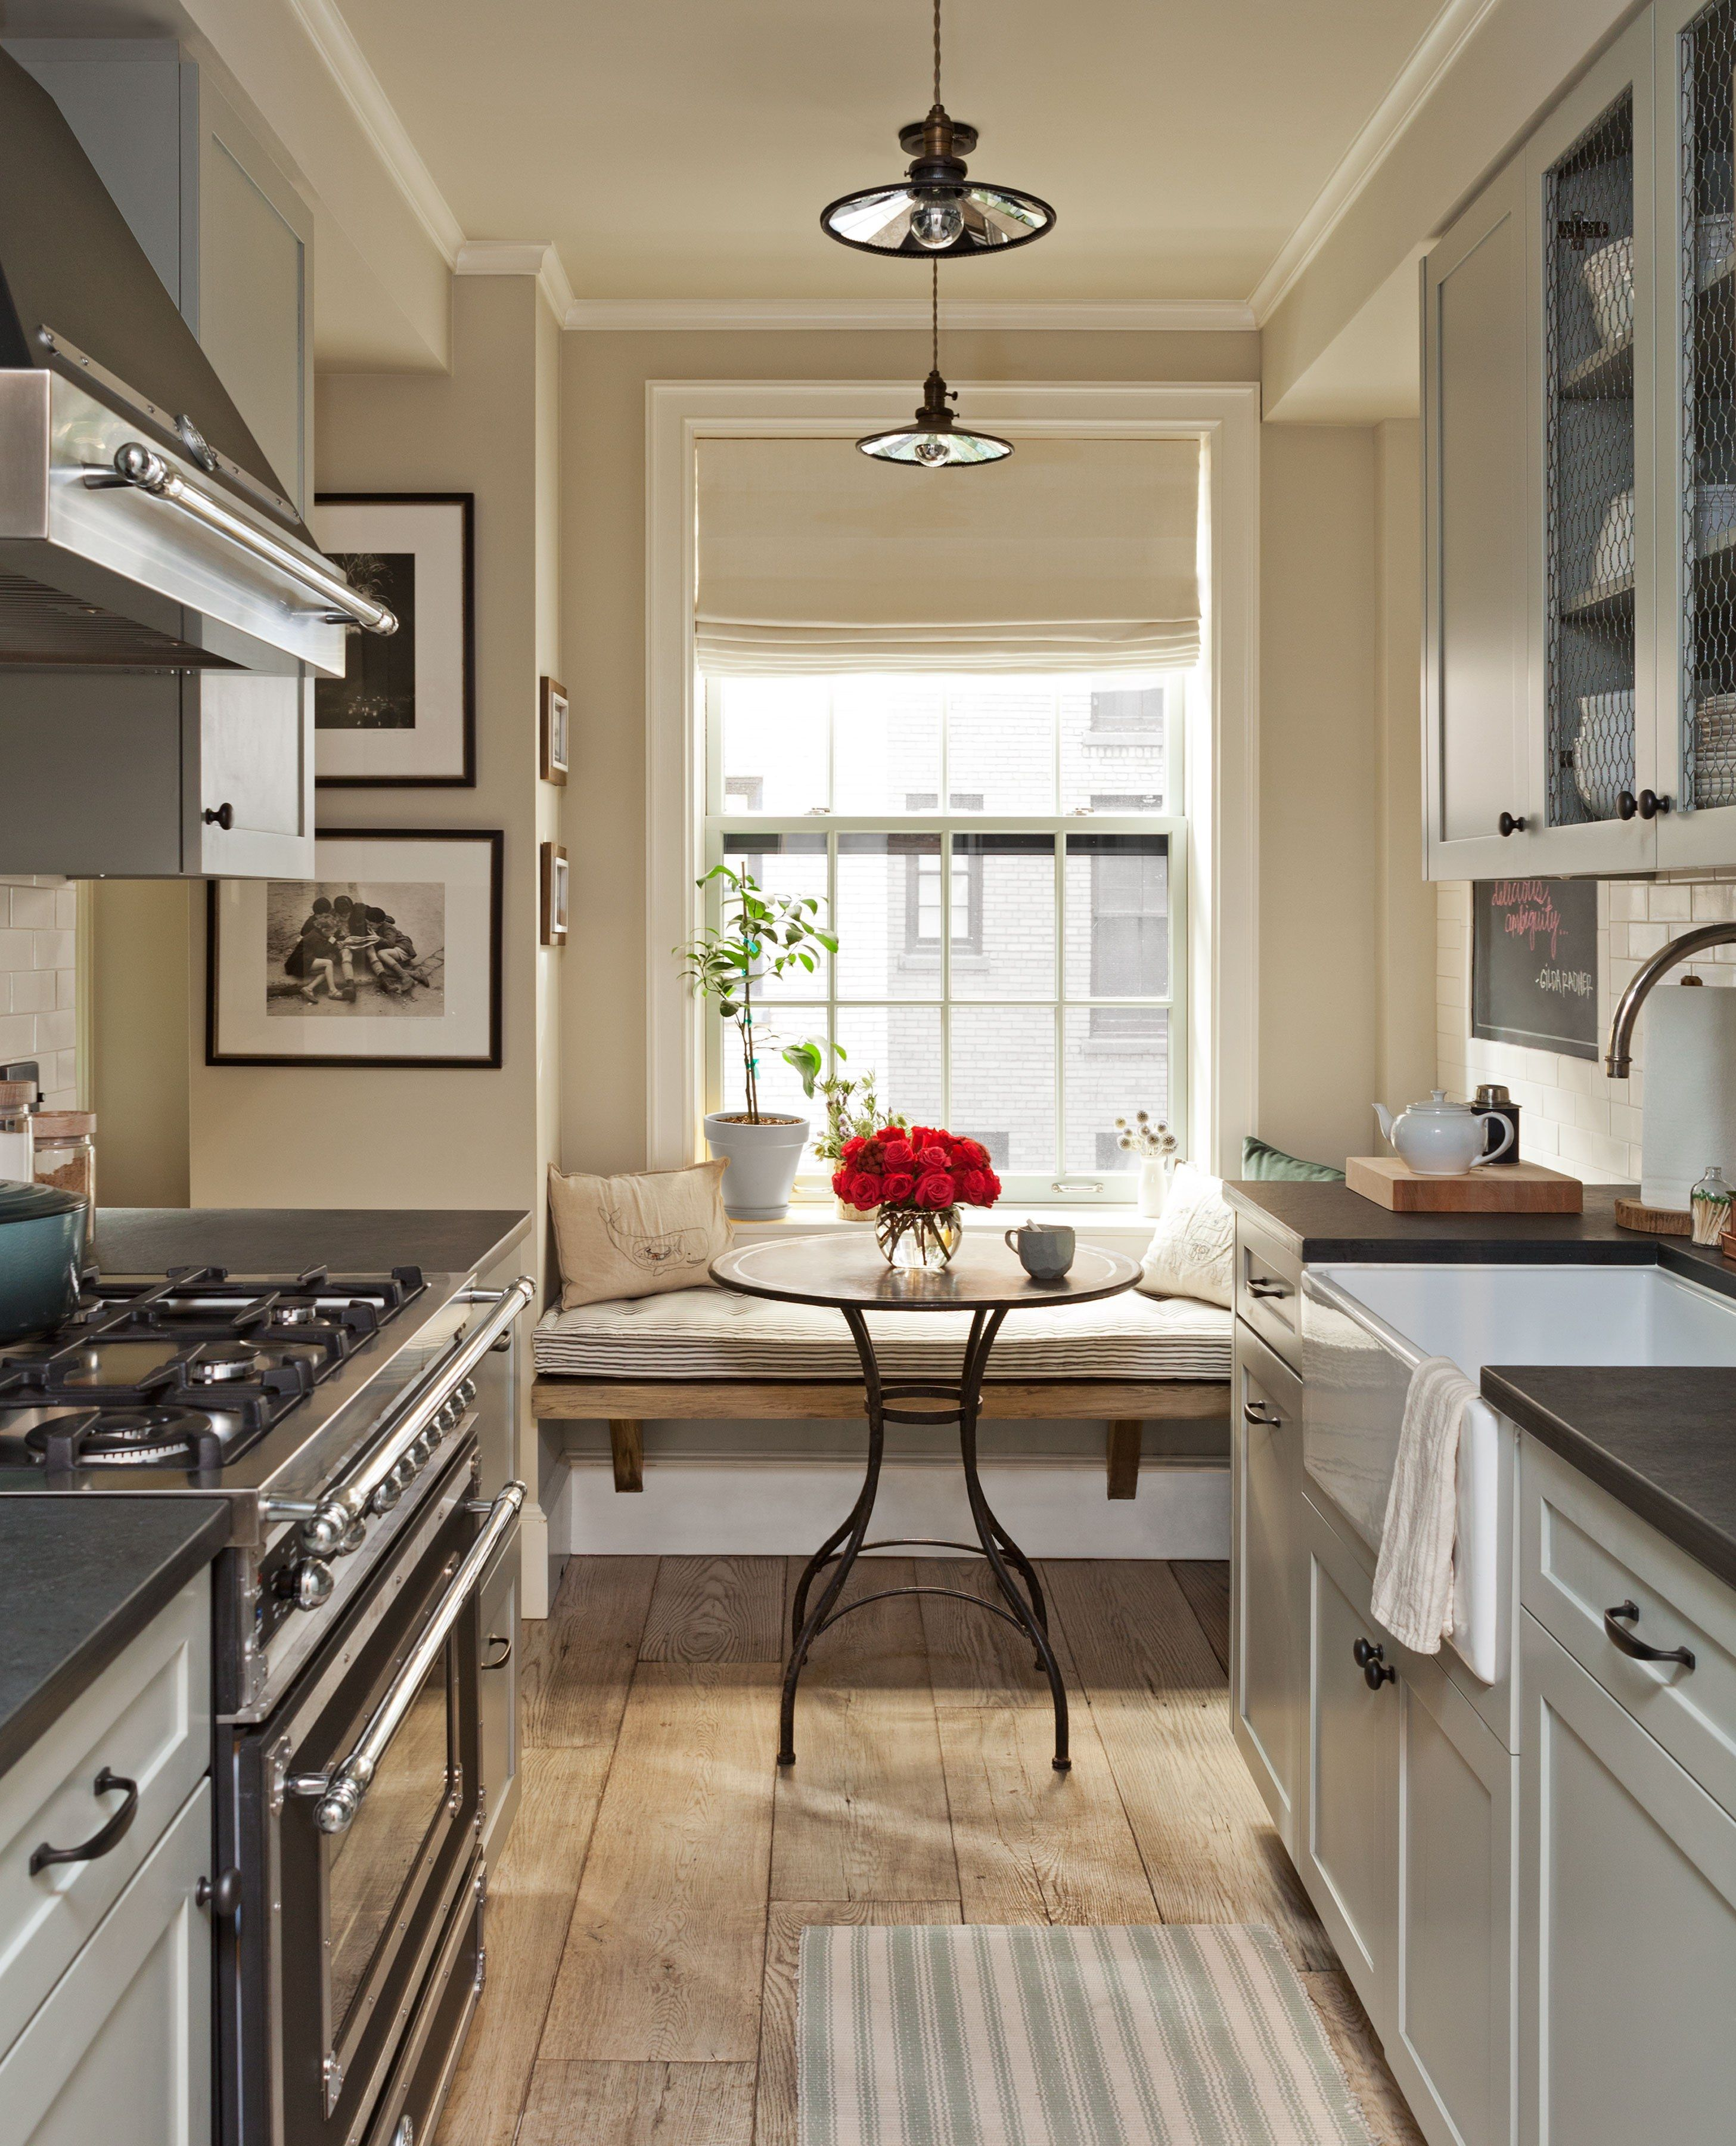 5 Tips to Make Your Small Kitchen